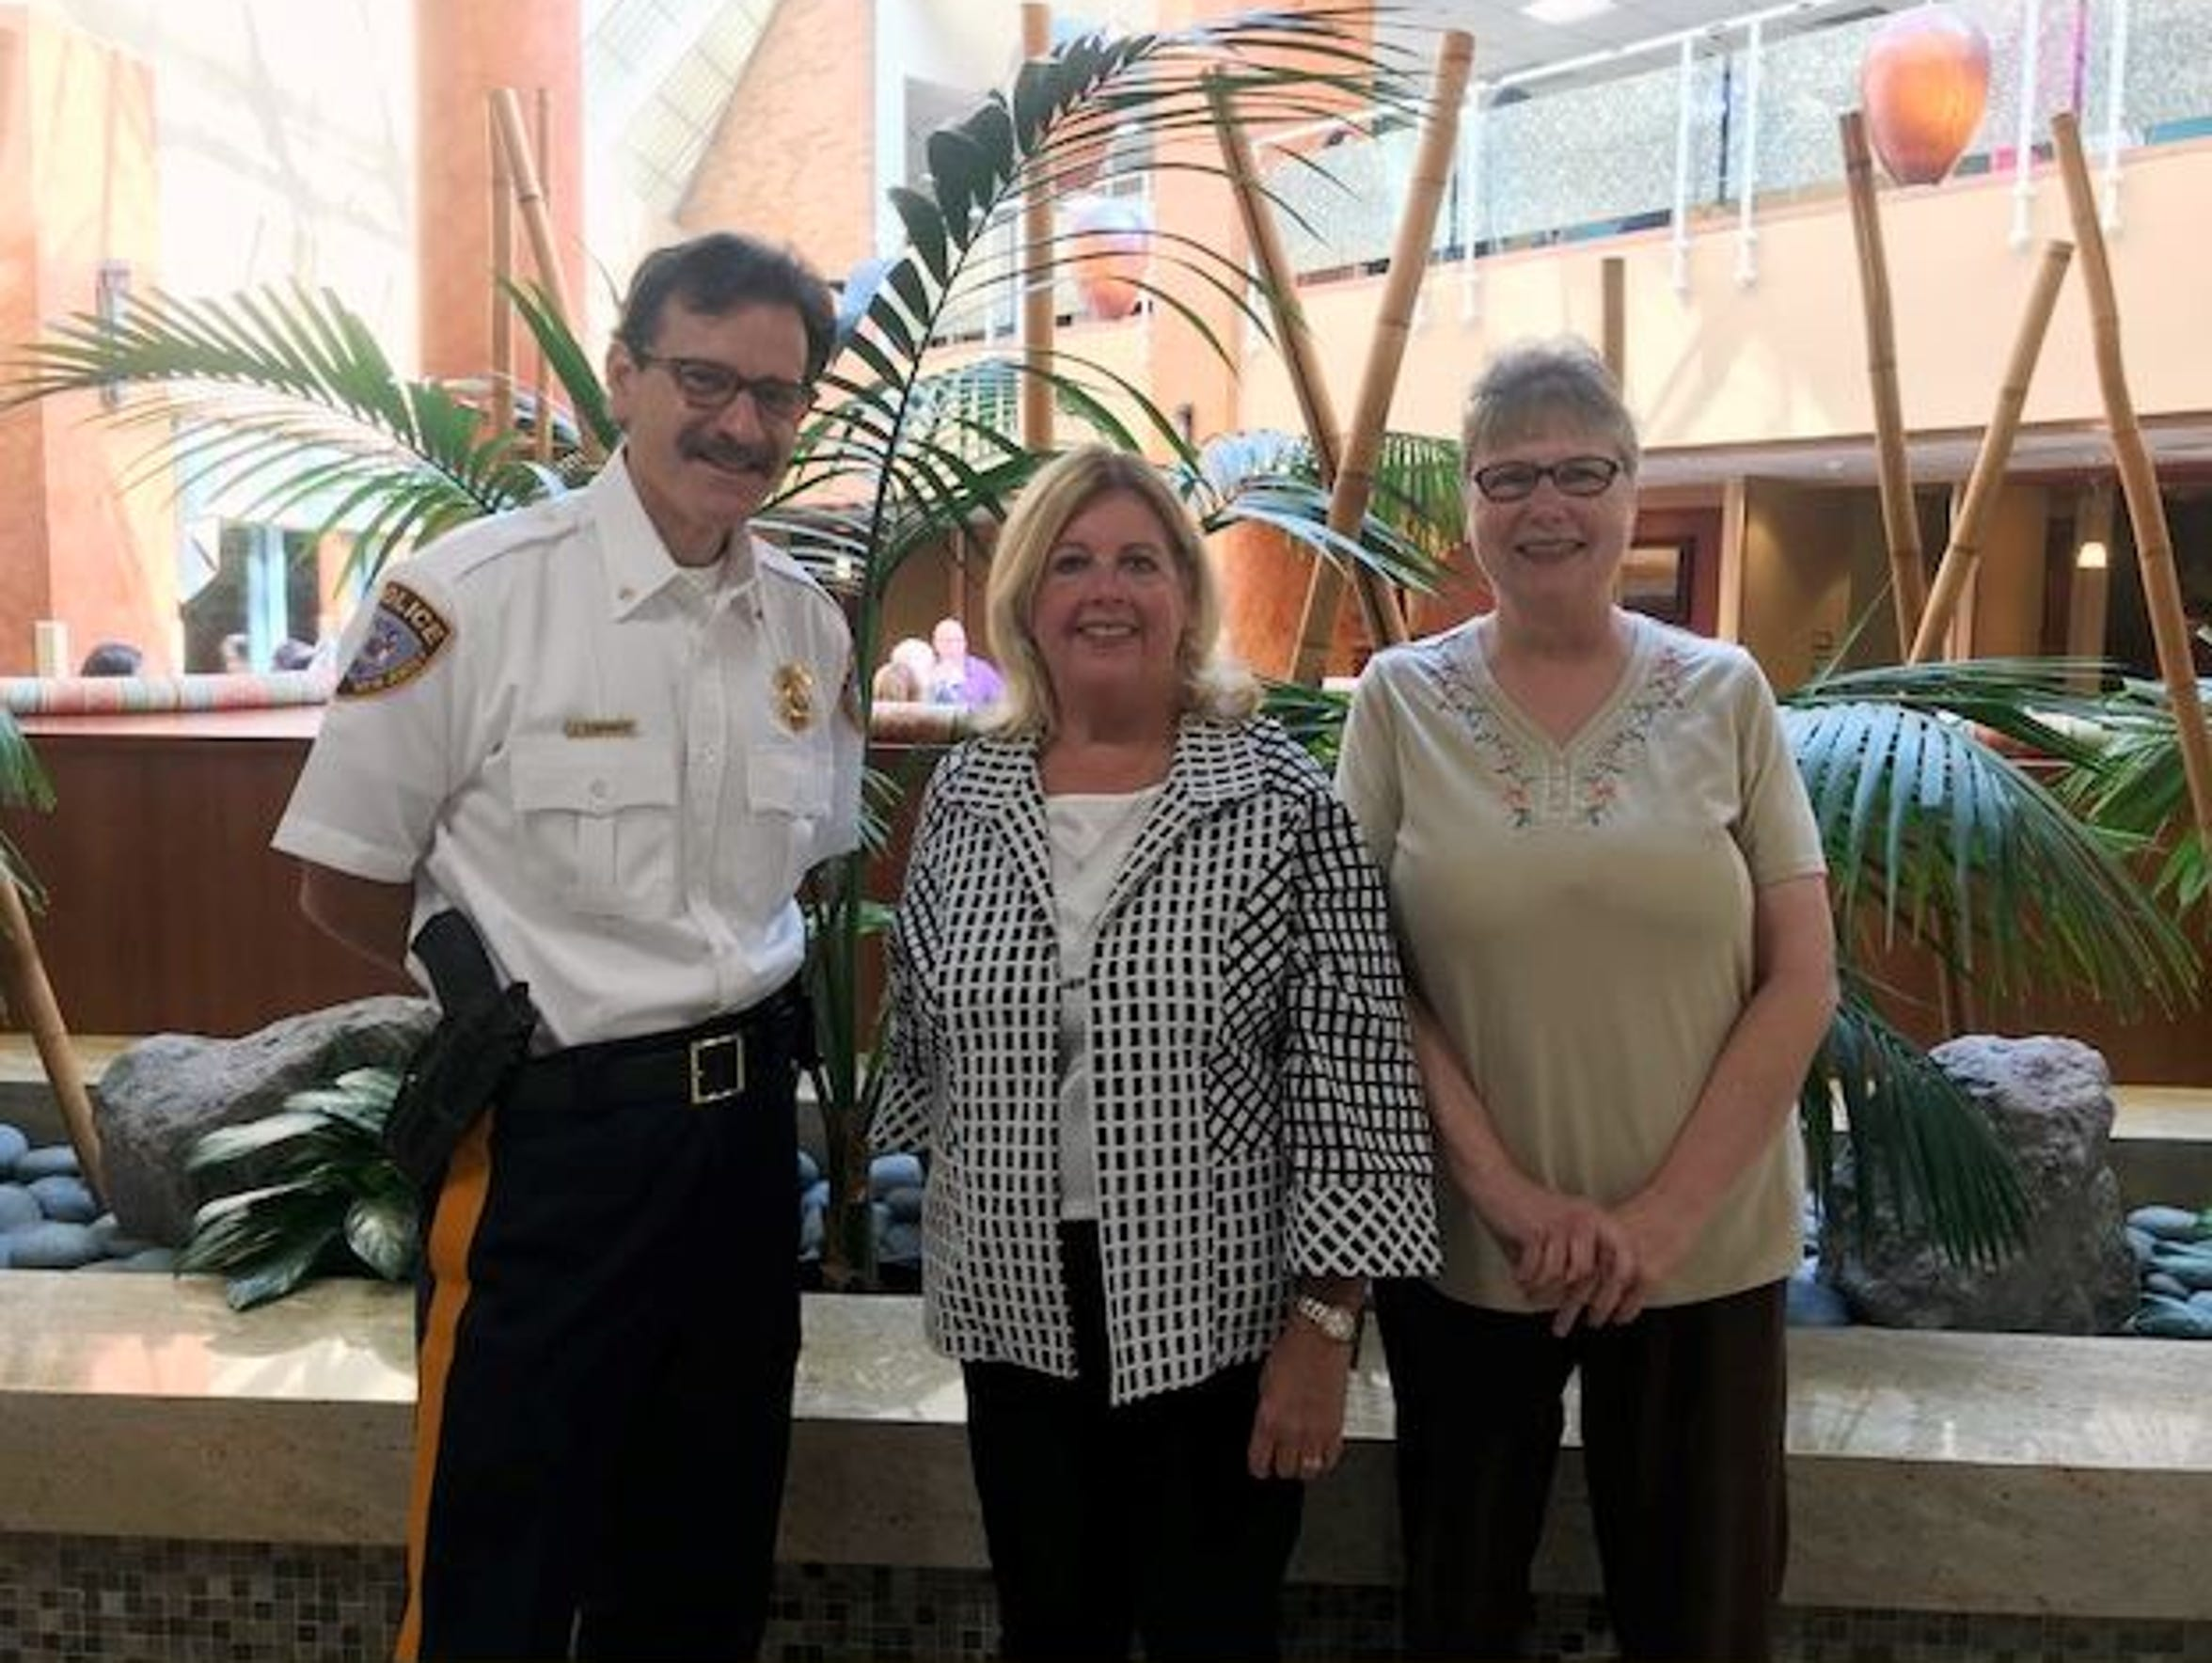 Sayreville Chief of Police John Zebrowski, Marge Drozd, Director, Saint Peter's Community Health Services, and Spotswood mom Jean Stevenson are delivering presentations in the community about the dangers of addiction.  The presentations are part of a Saint Peter's Opioid Addiction Treatment Task Force initiative.